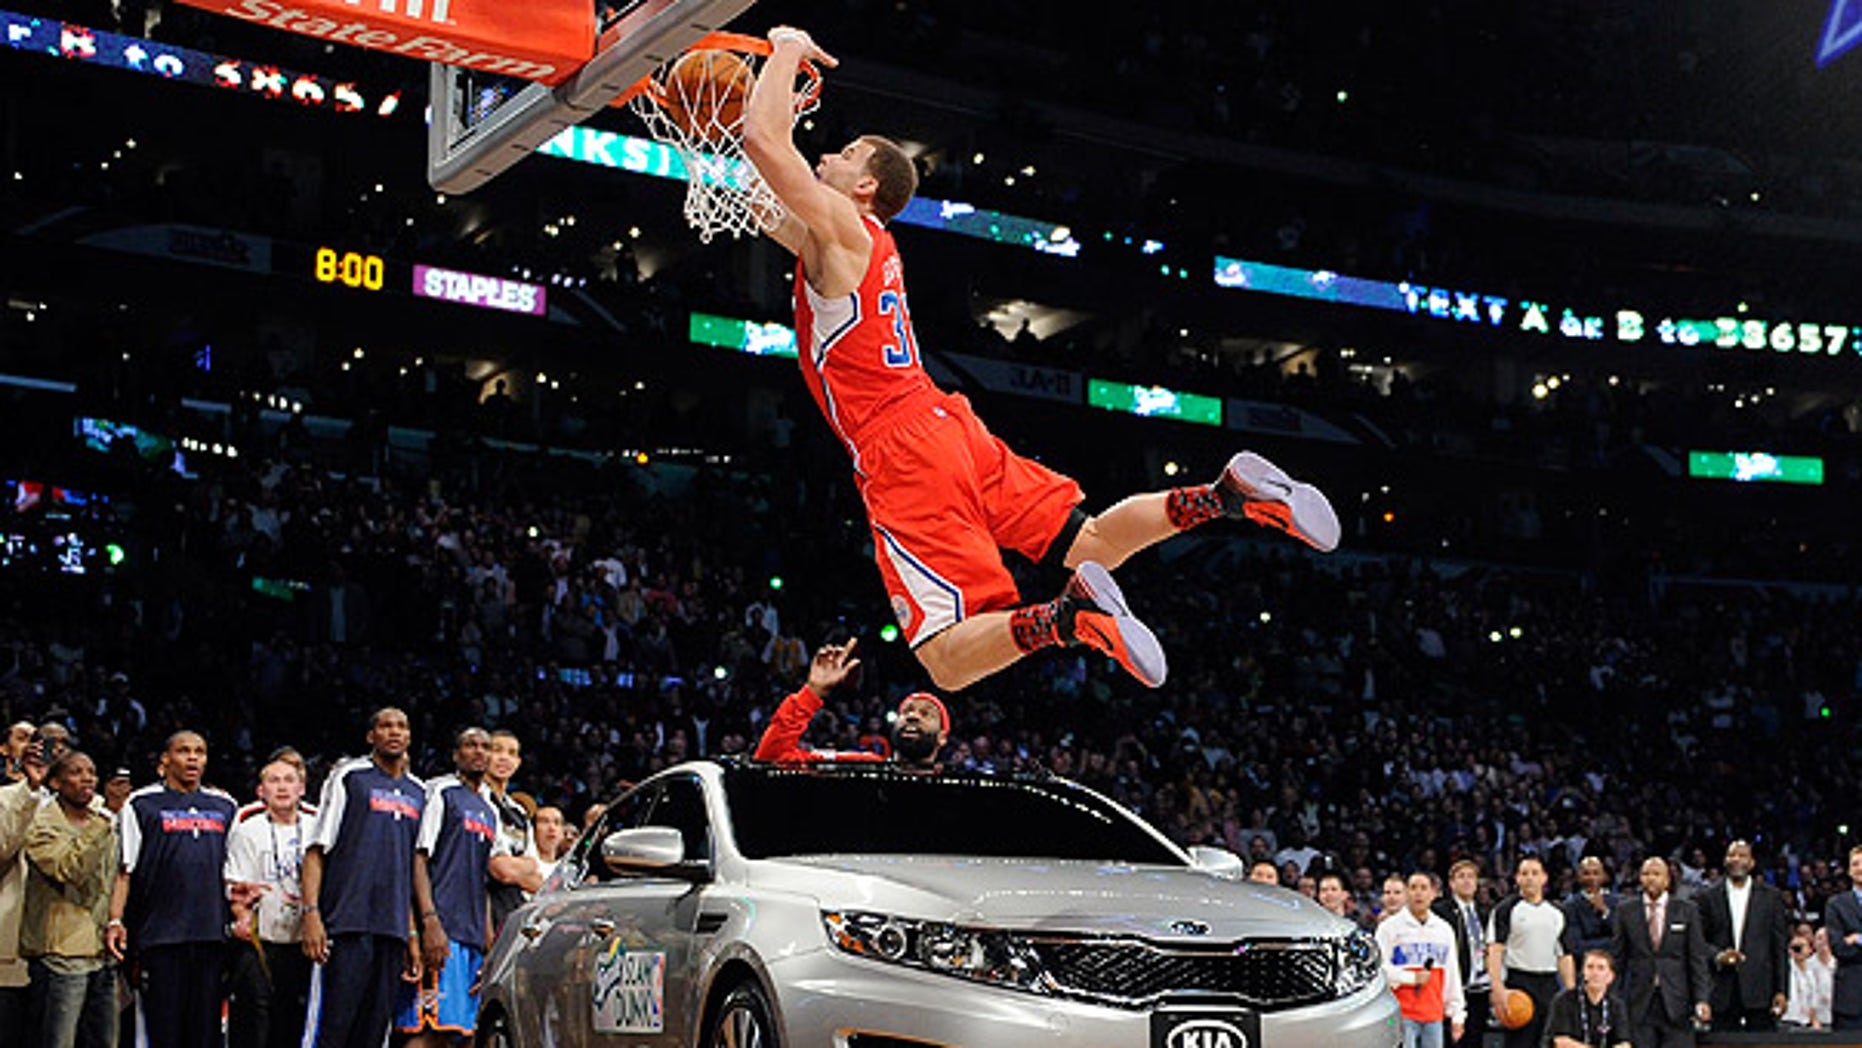 Feb. 19: Los Angeles Clippers' Blake Griffin dunks over a car as teammate Baron Davis looks on from inside the car during the Slam Dunk Contest in Los Angeles.